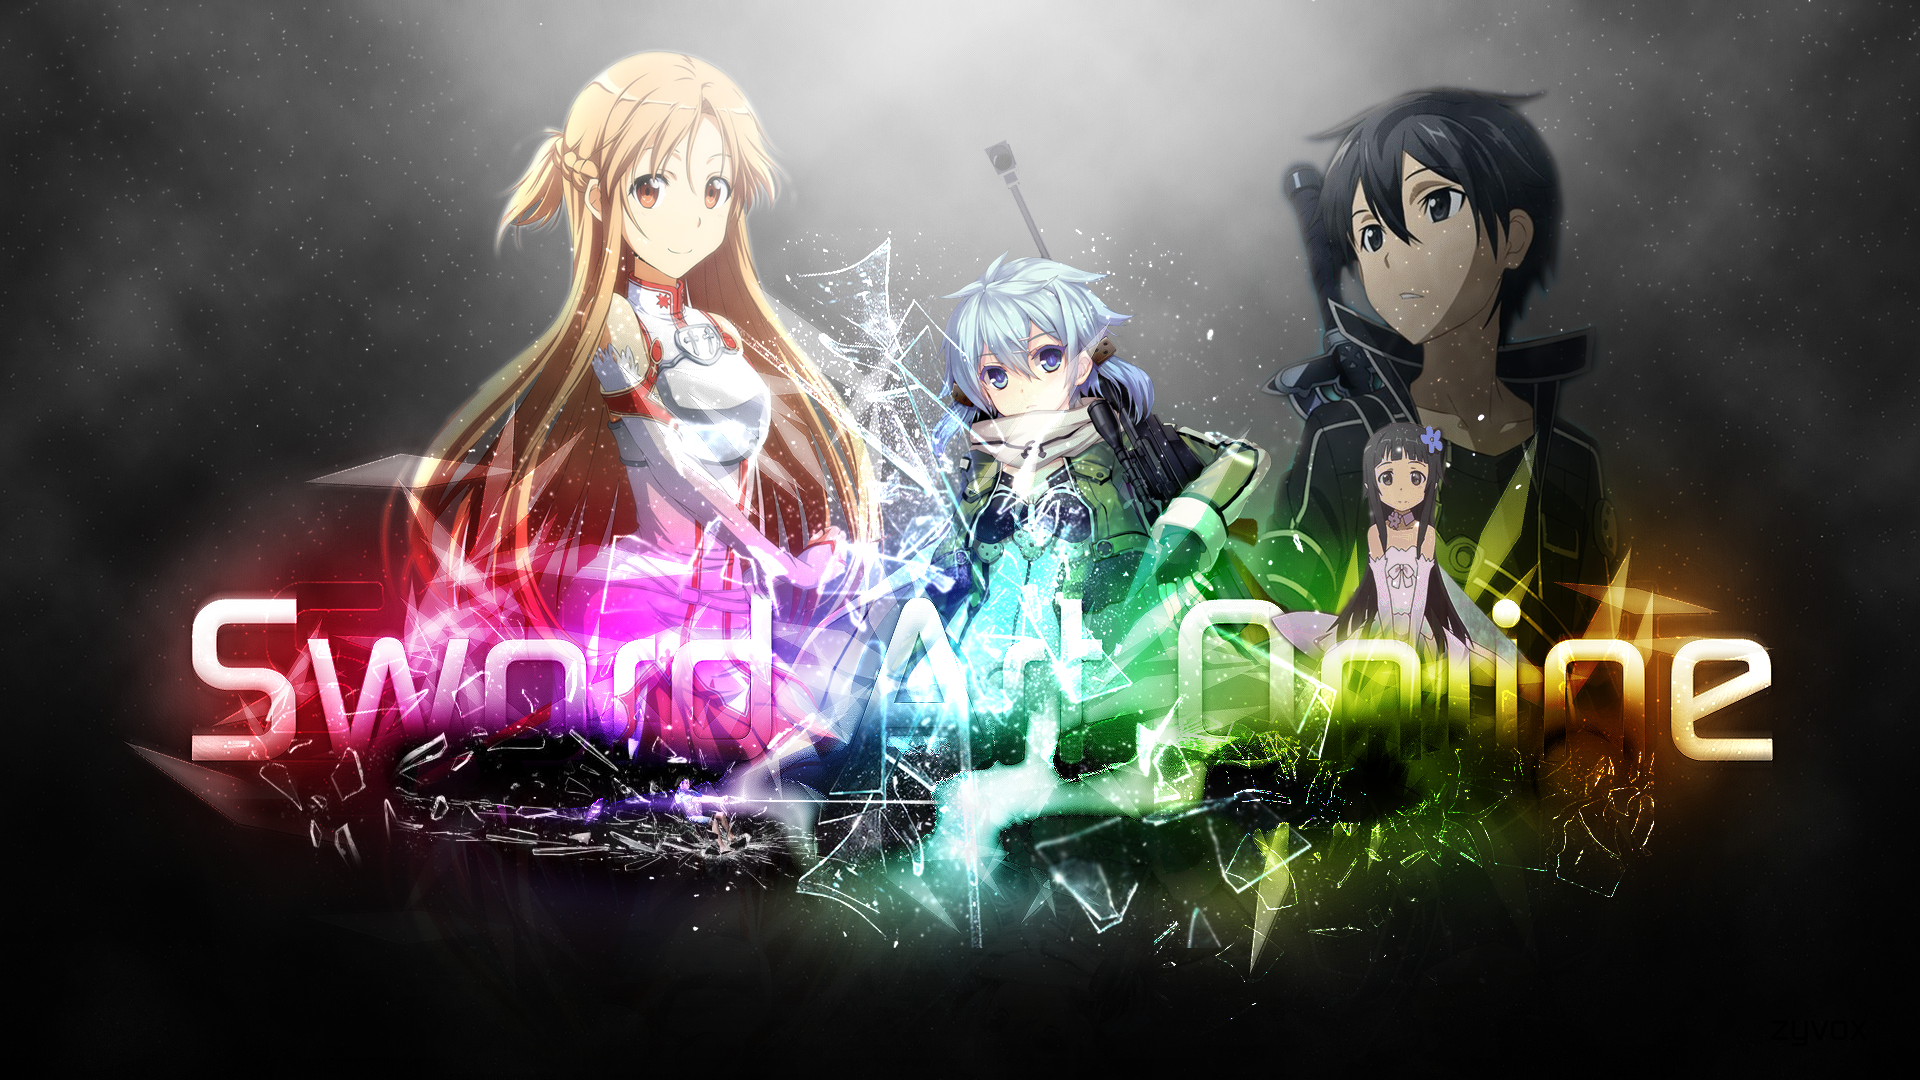 More SAO Wallpapers 24 new x post rswordartonline anime 1920x1080